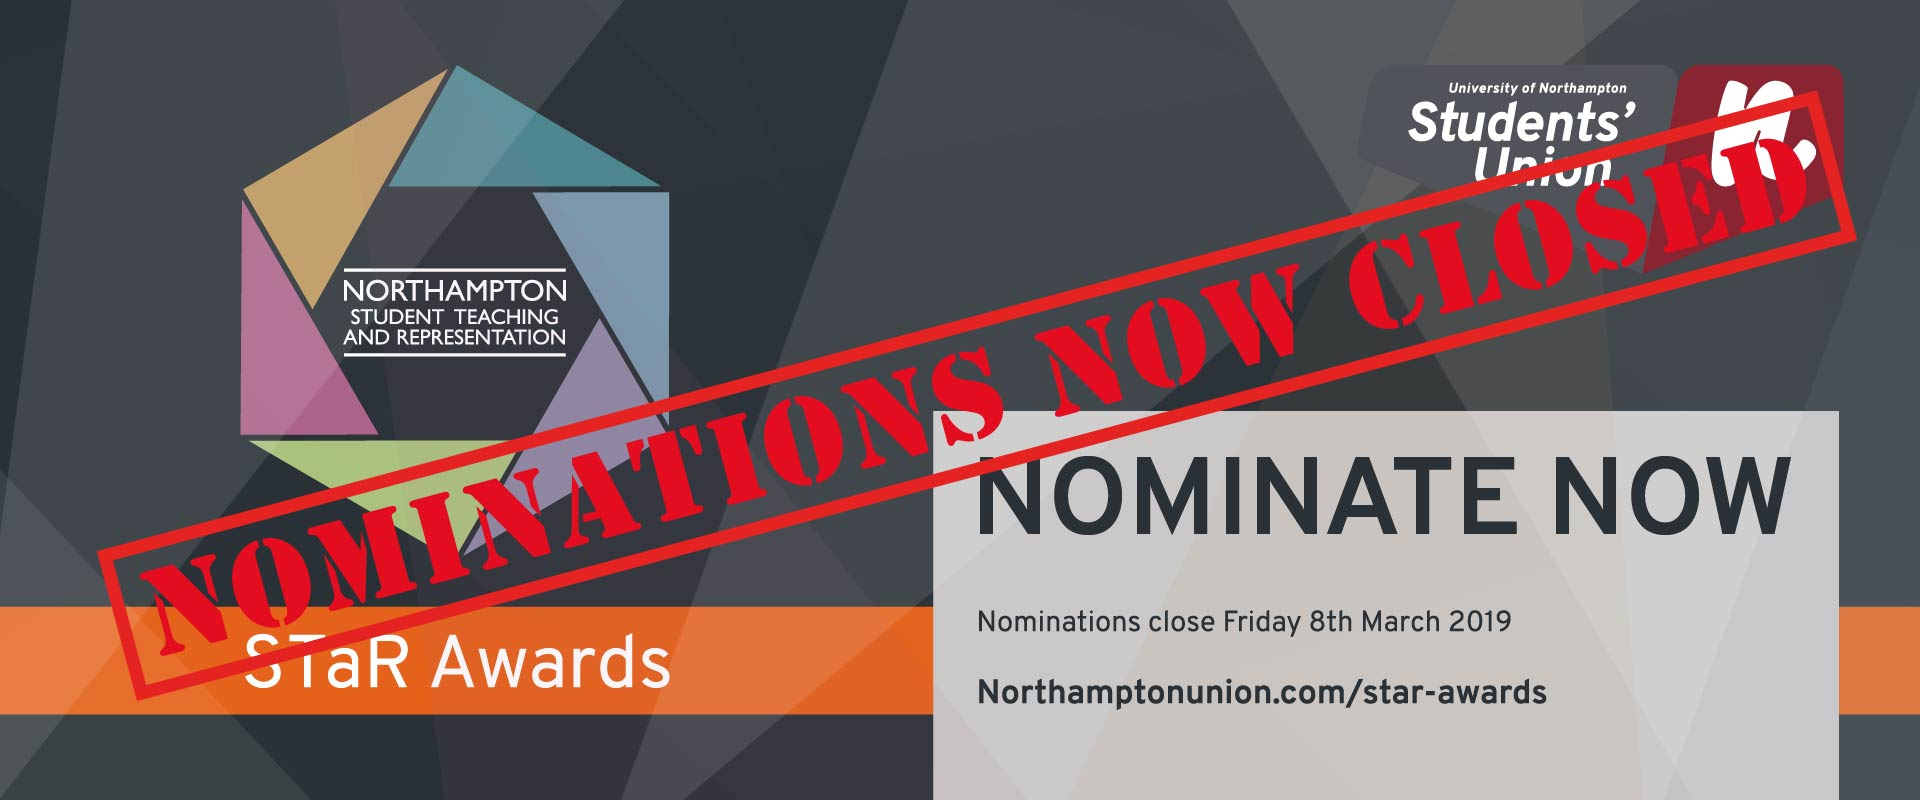 Nominate Now for STaR Awards